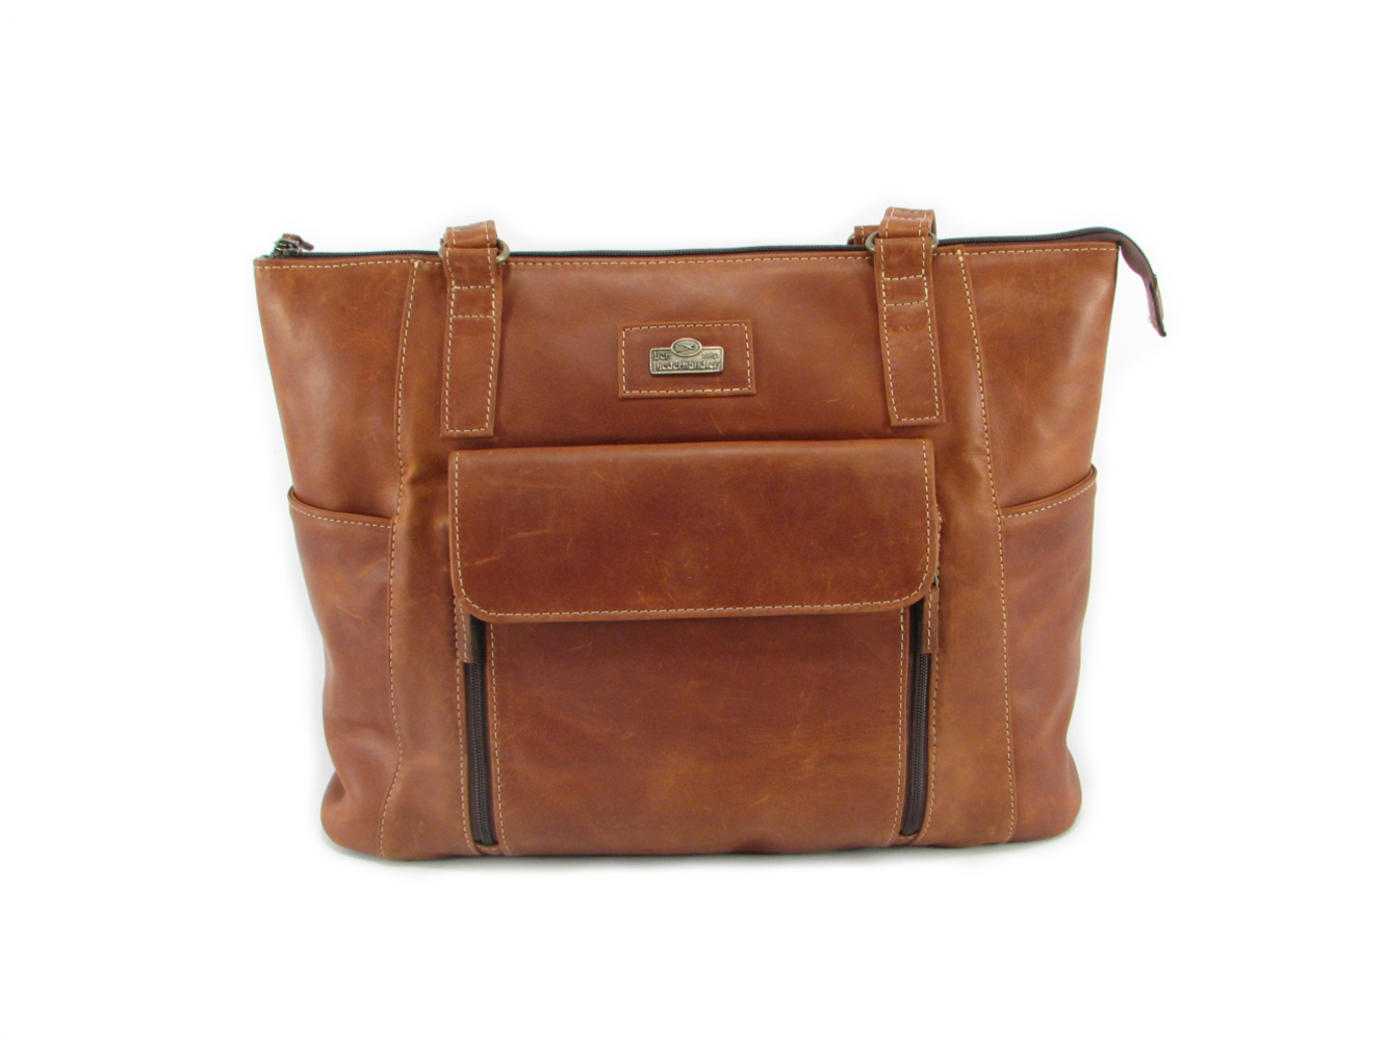 f7f5d4dfd8ad ... Shoulder Handbag Antje Hp7272 Der. Country Western Leather  more photos  9442f 81a70 Tosca No 2 HP7302 ...